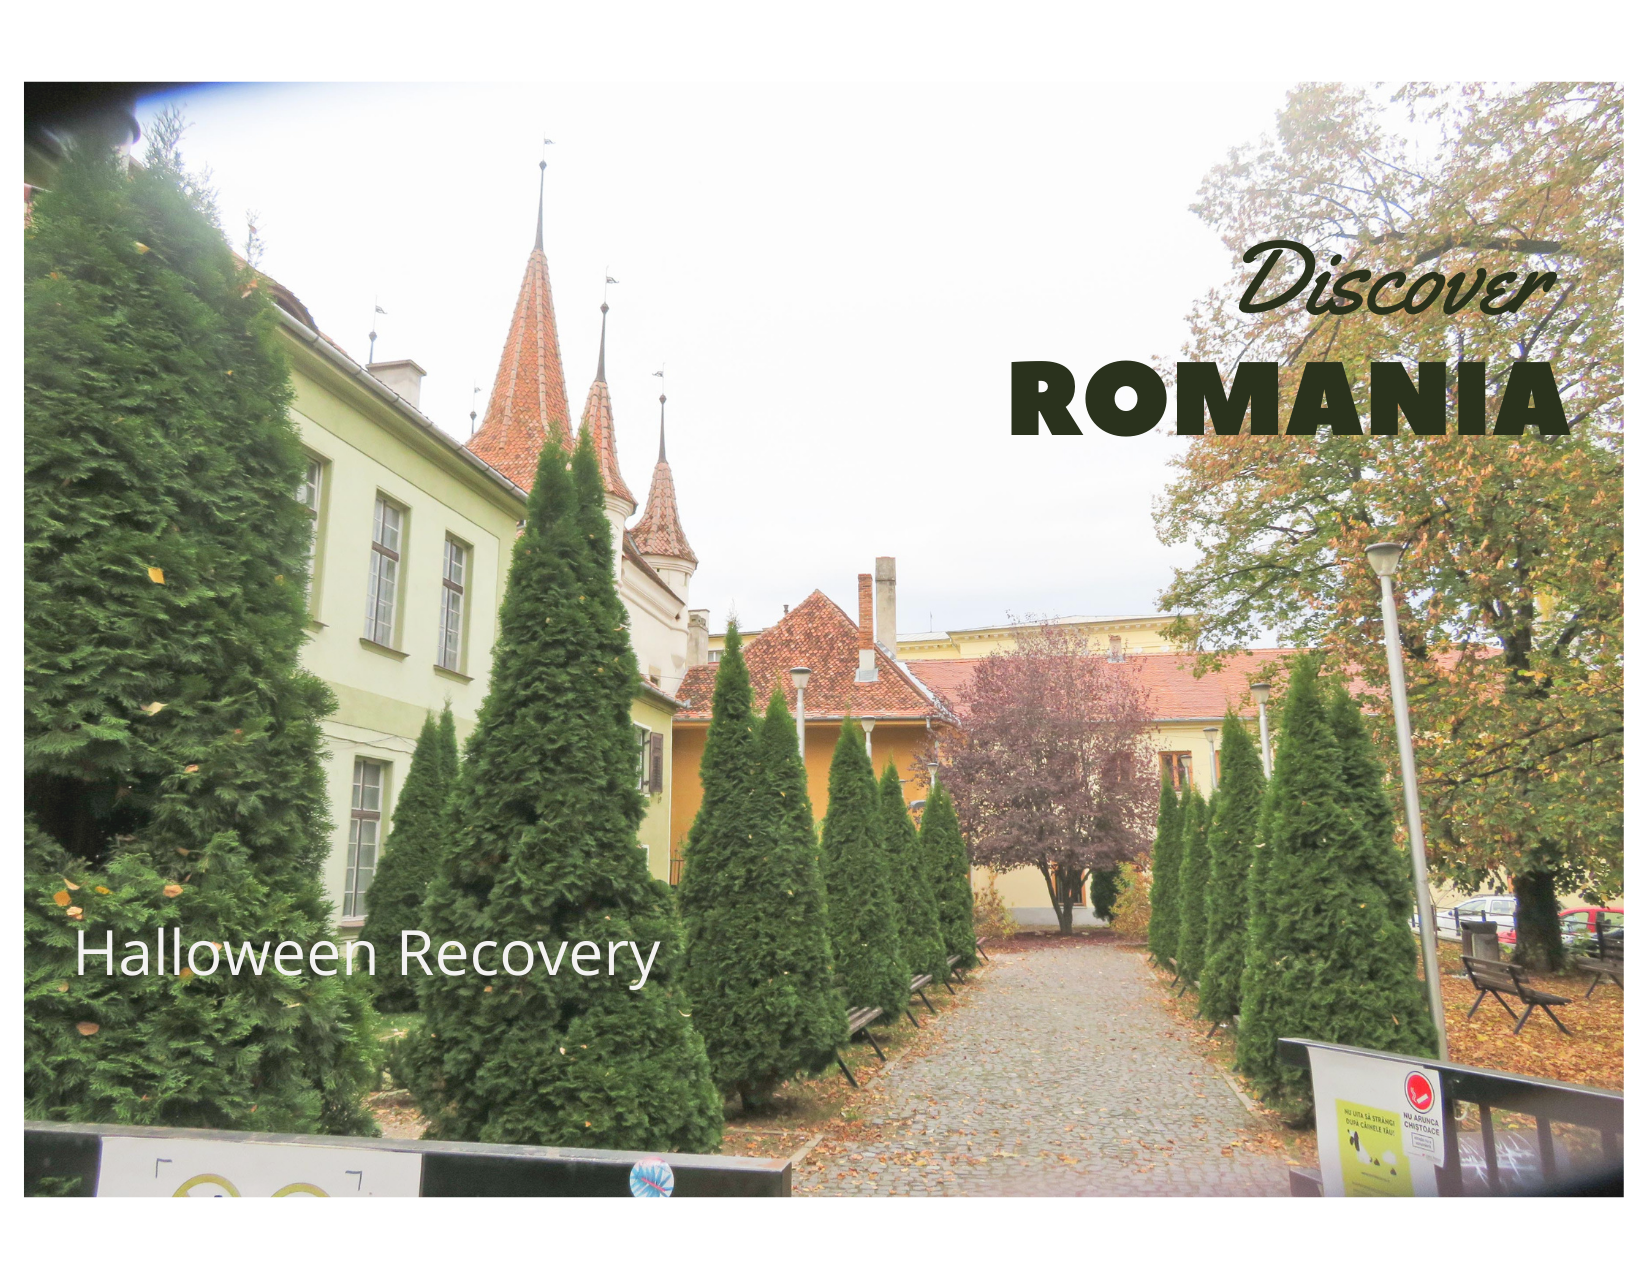 Discover Romania: Day 4 – Halloween Recovery